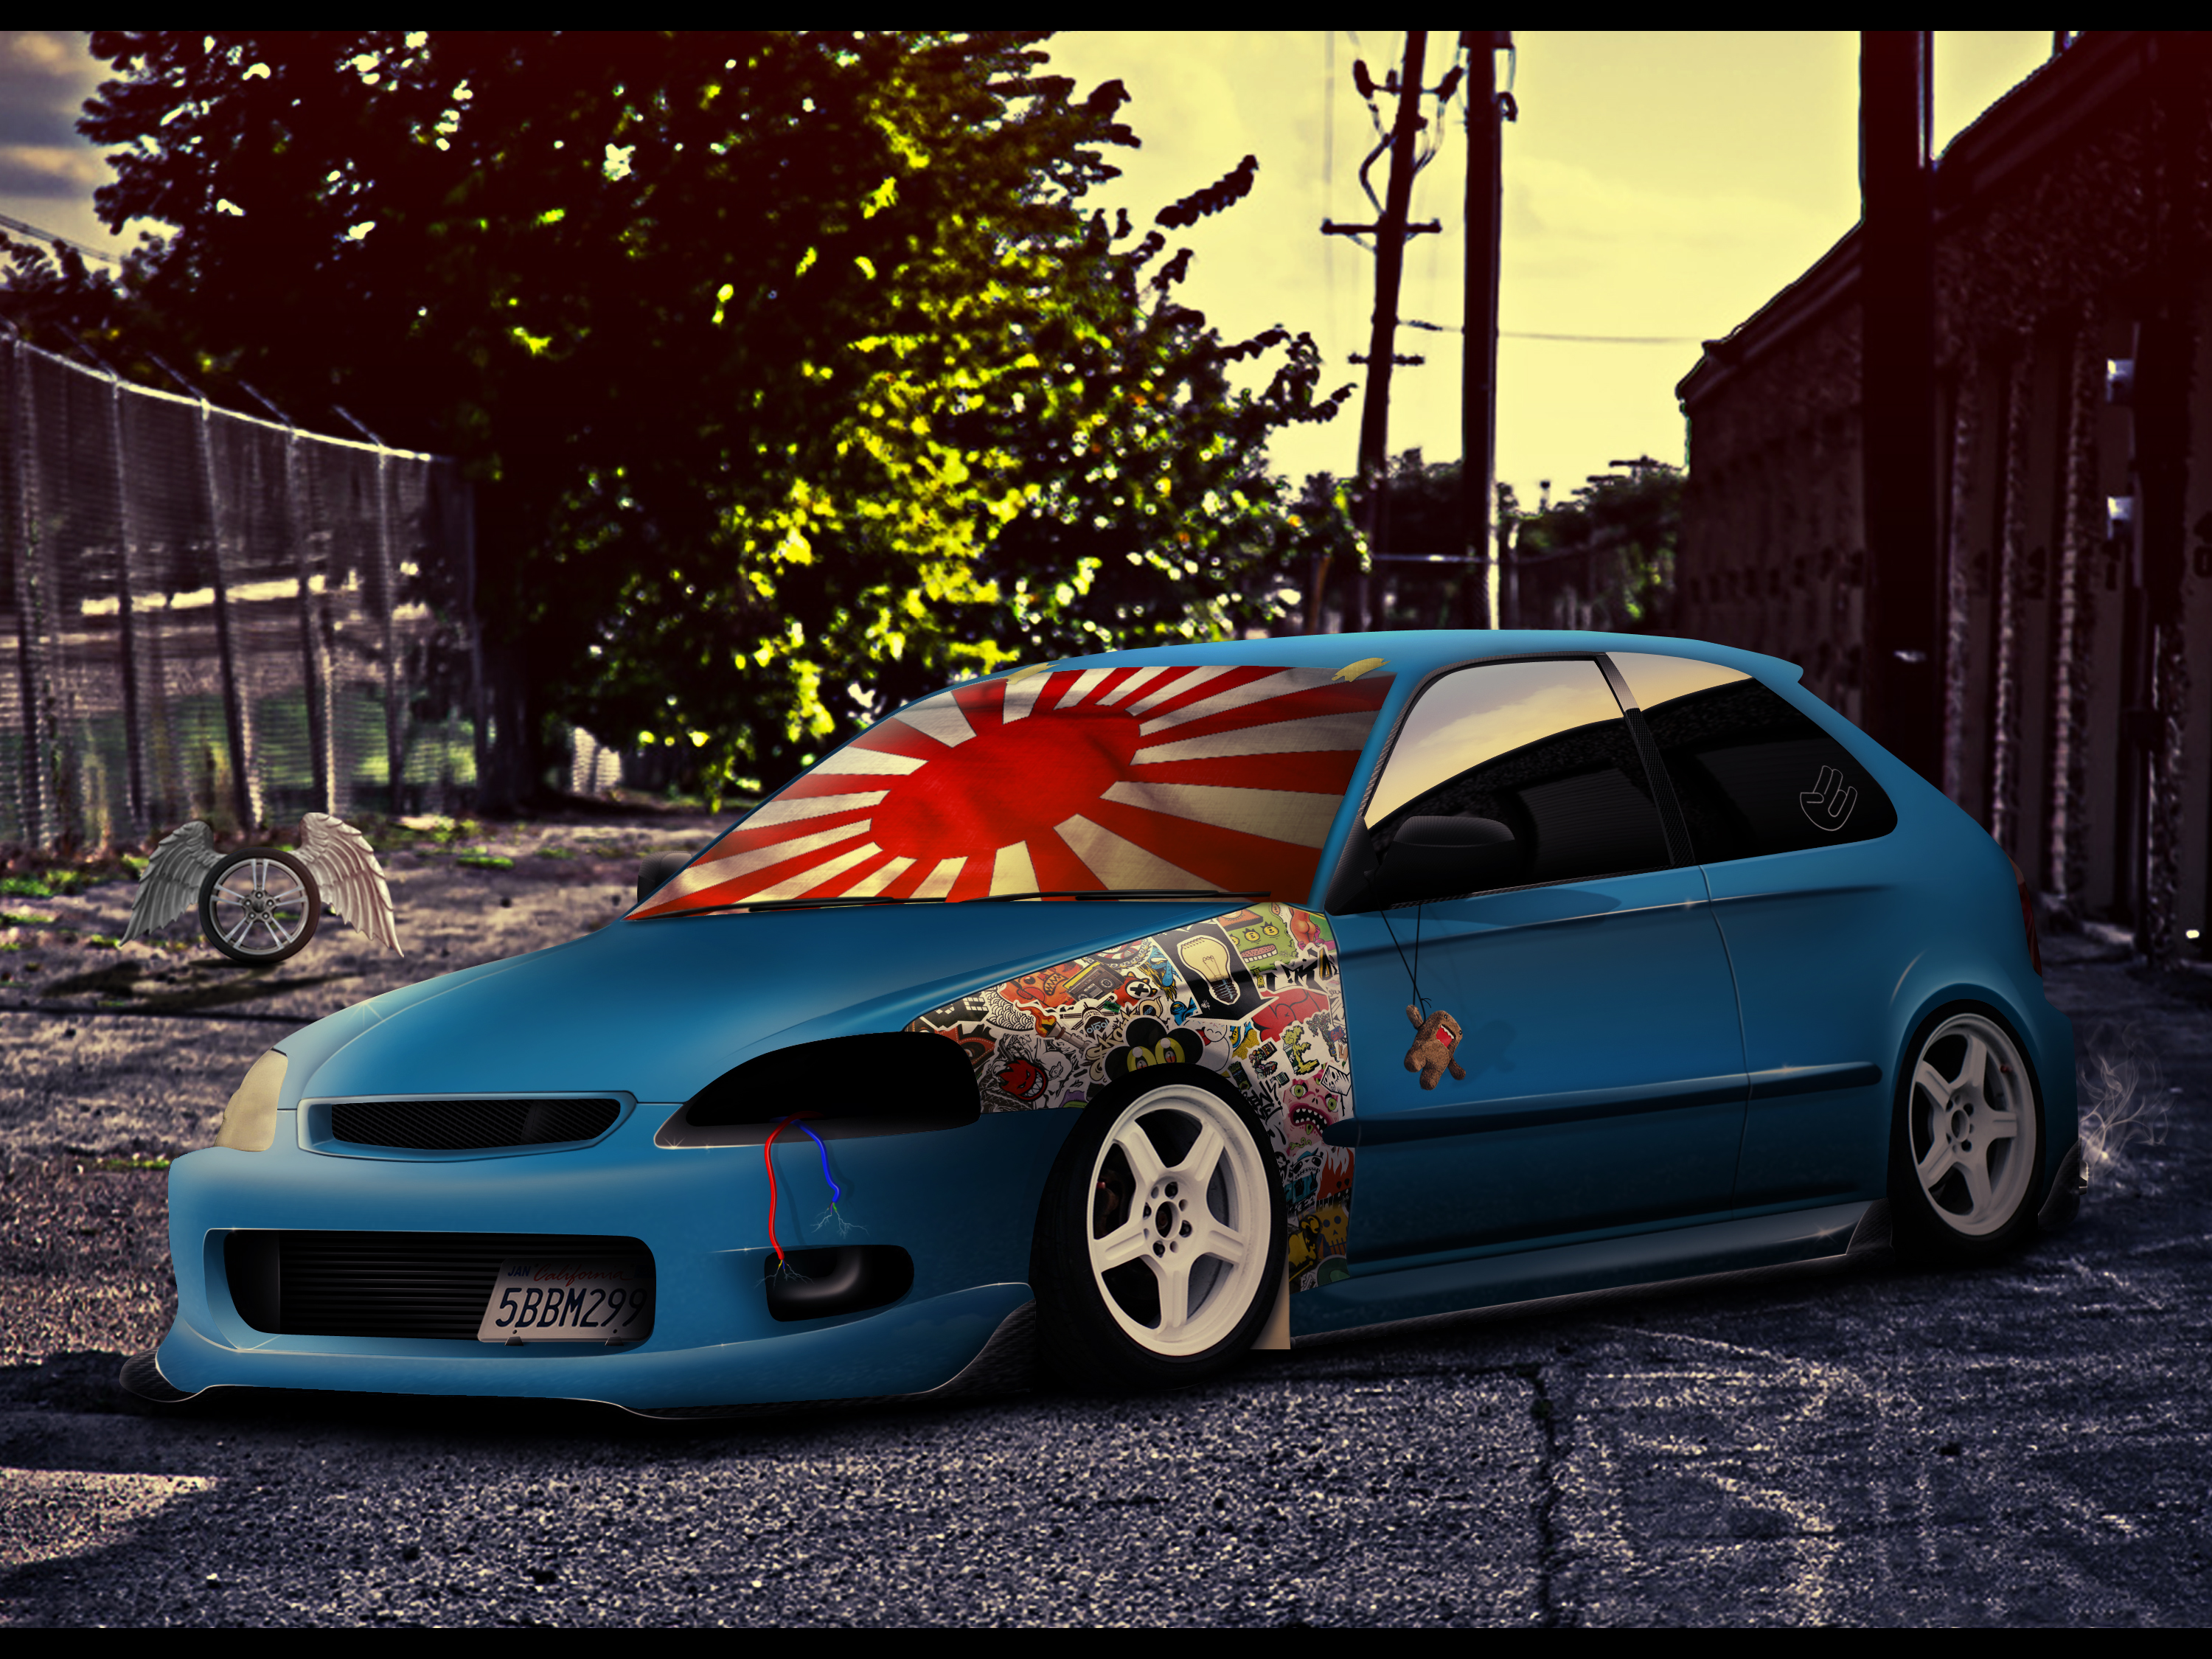 Excellent Honda Civic Jdm By Willsdesign With Honda Civic Si Jdm